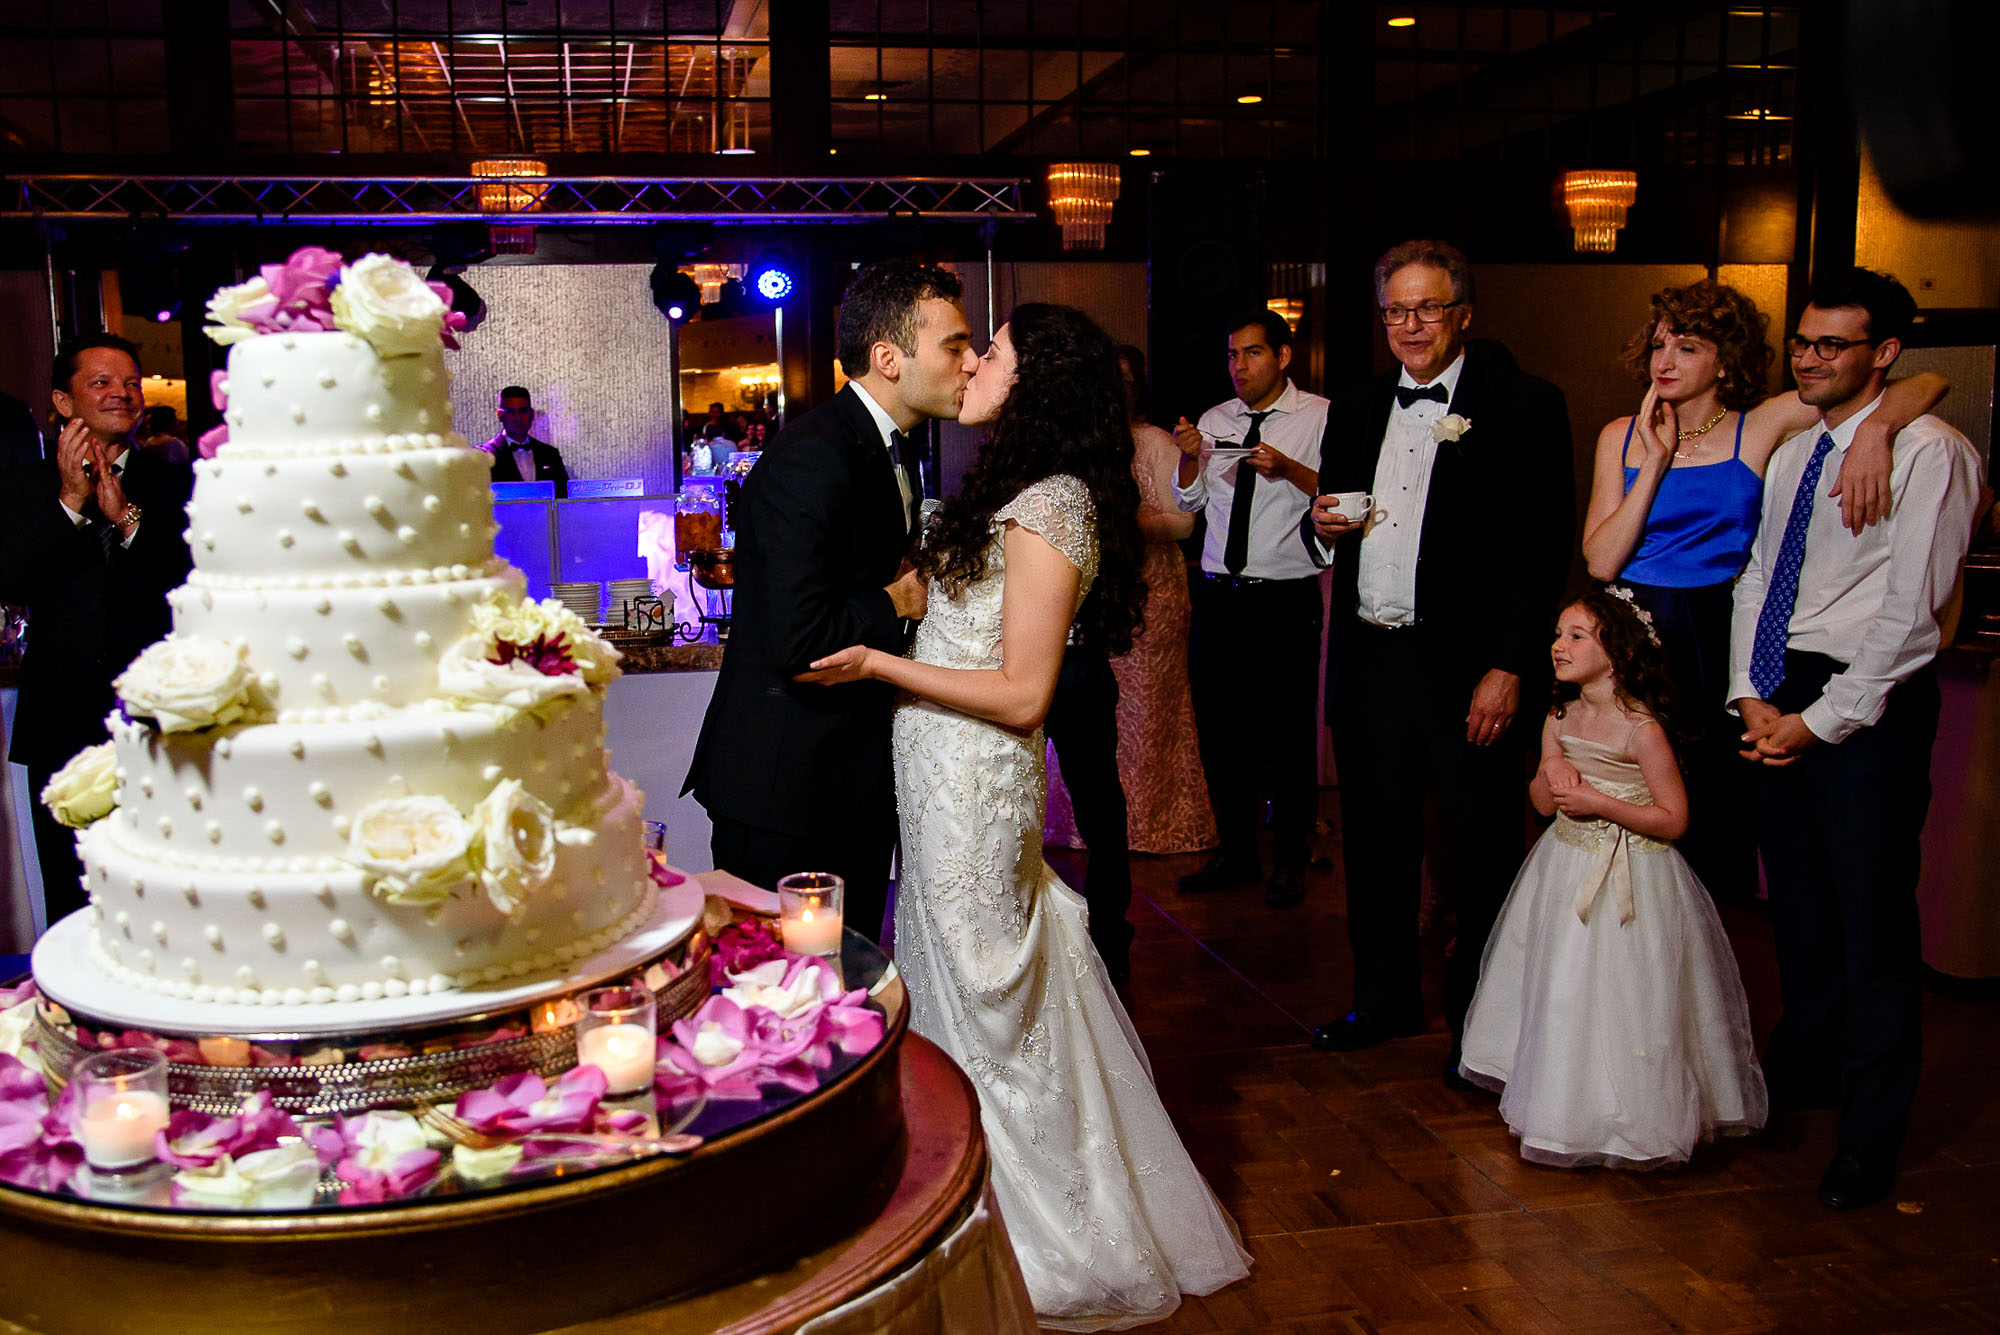 The Sephardic Temple wedding cake cutting